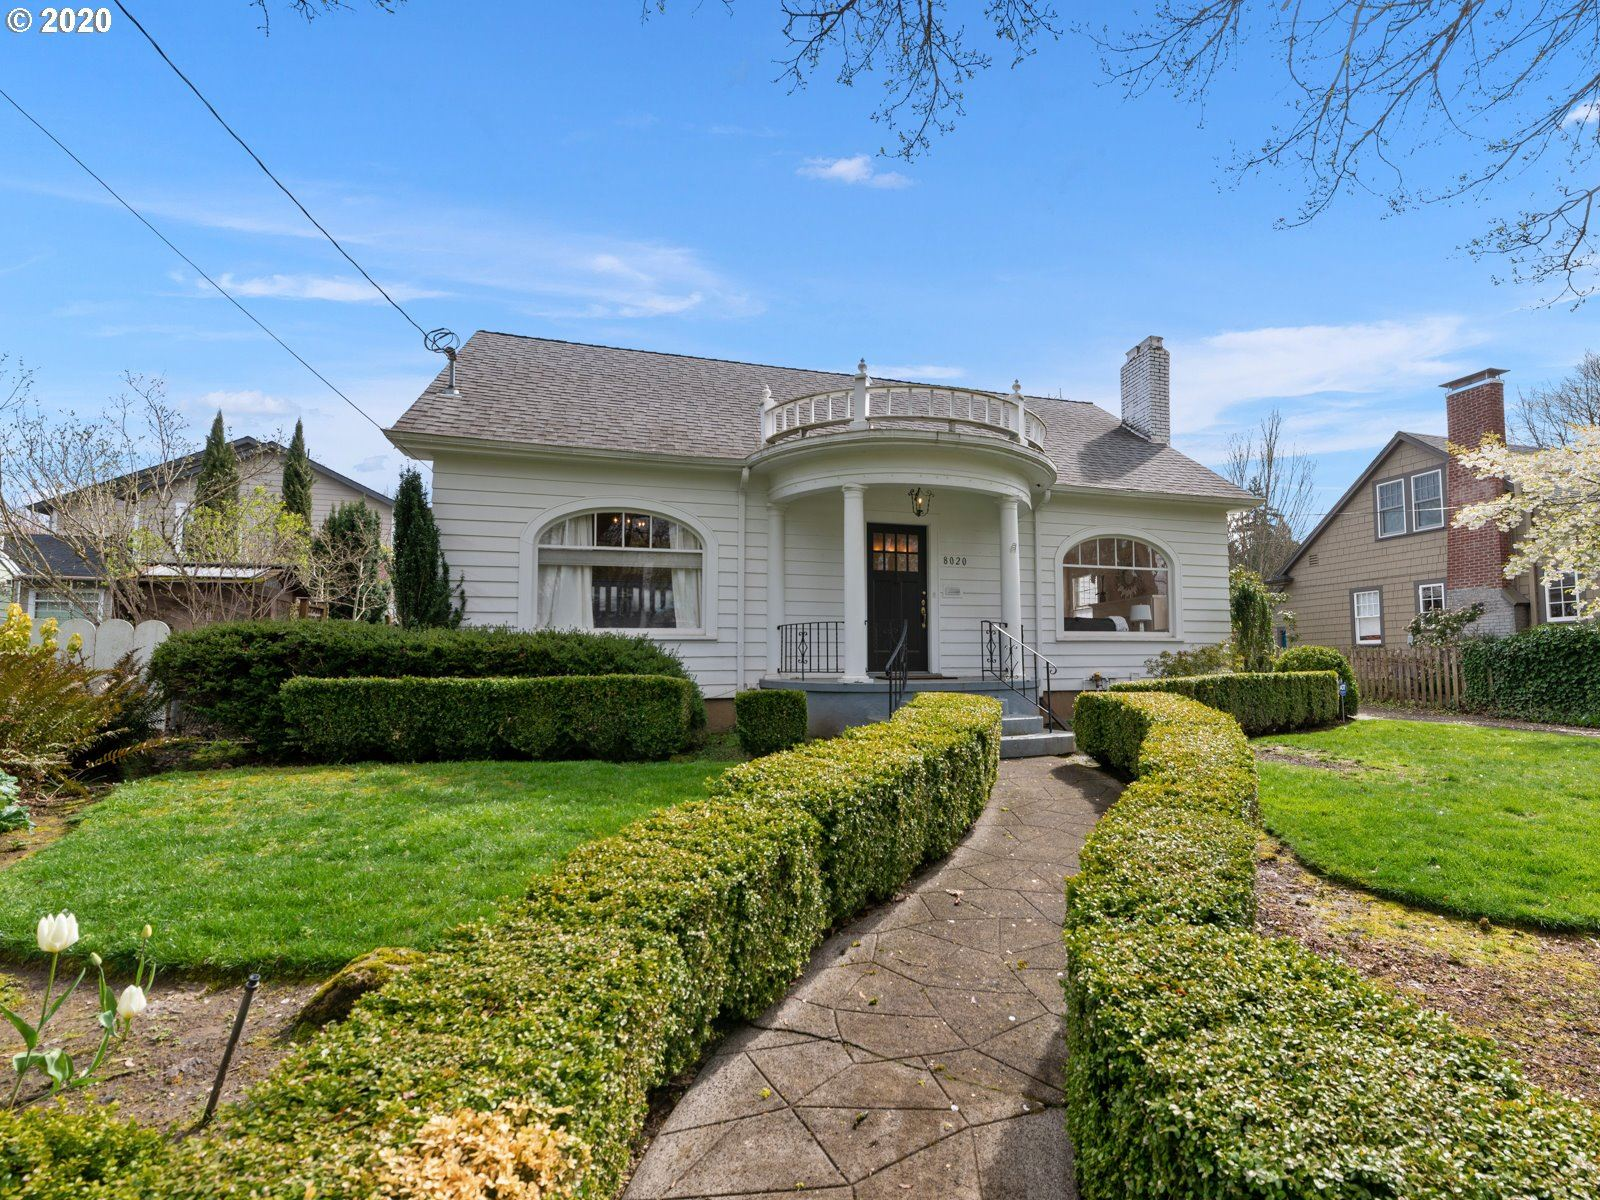 8020 SE 36TH AVE, Portland, OR 97202 - MLS#: 20376035